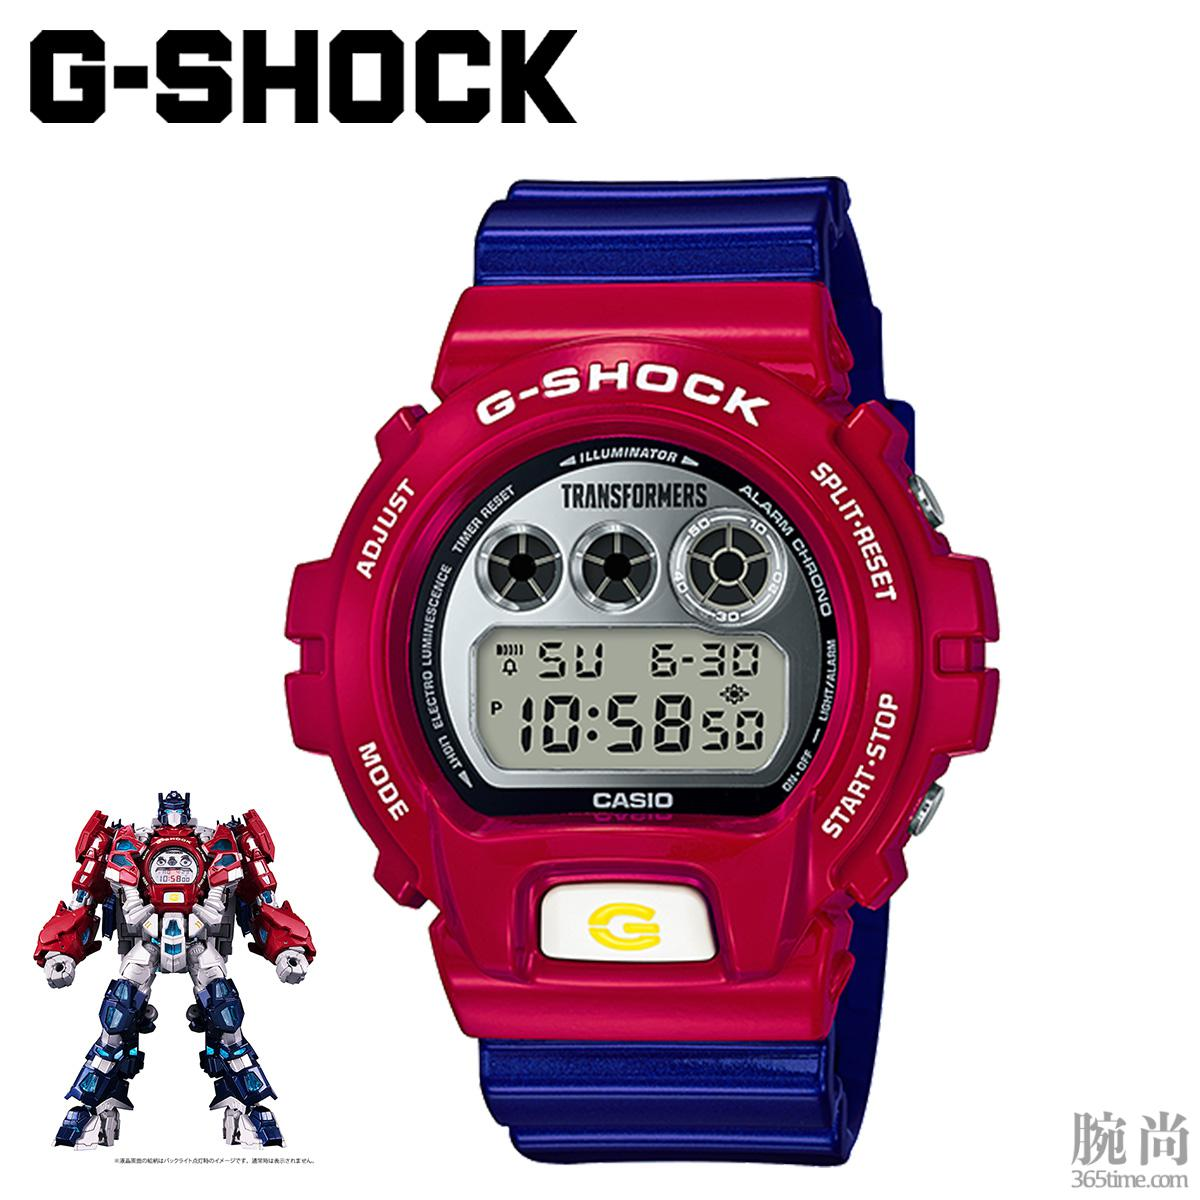 dw-6900tf-set-a.jpg